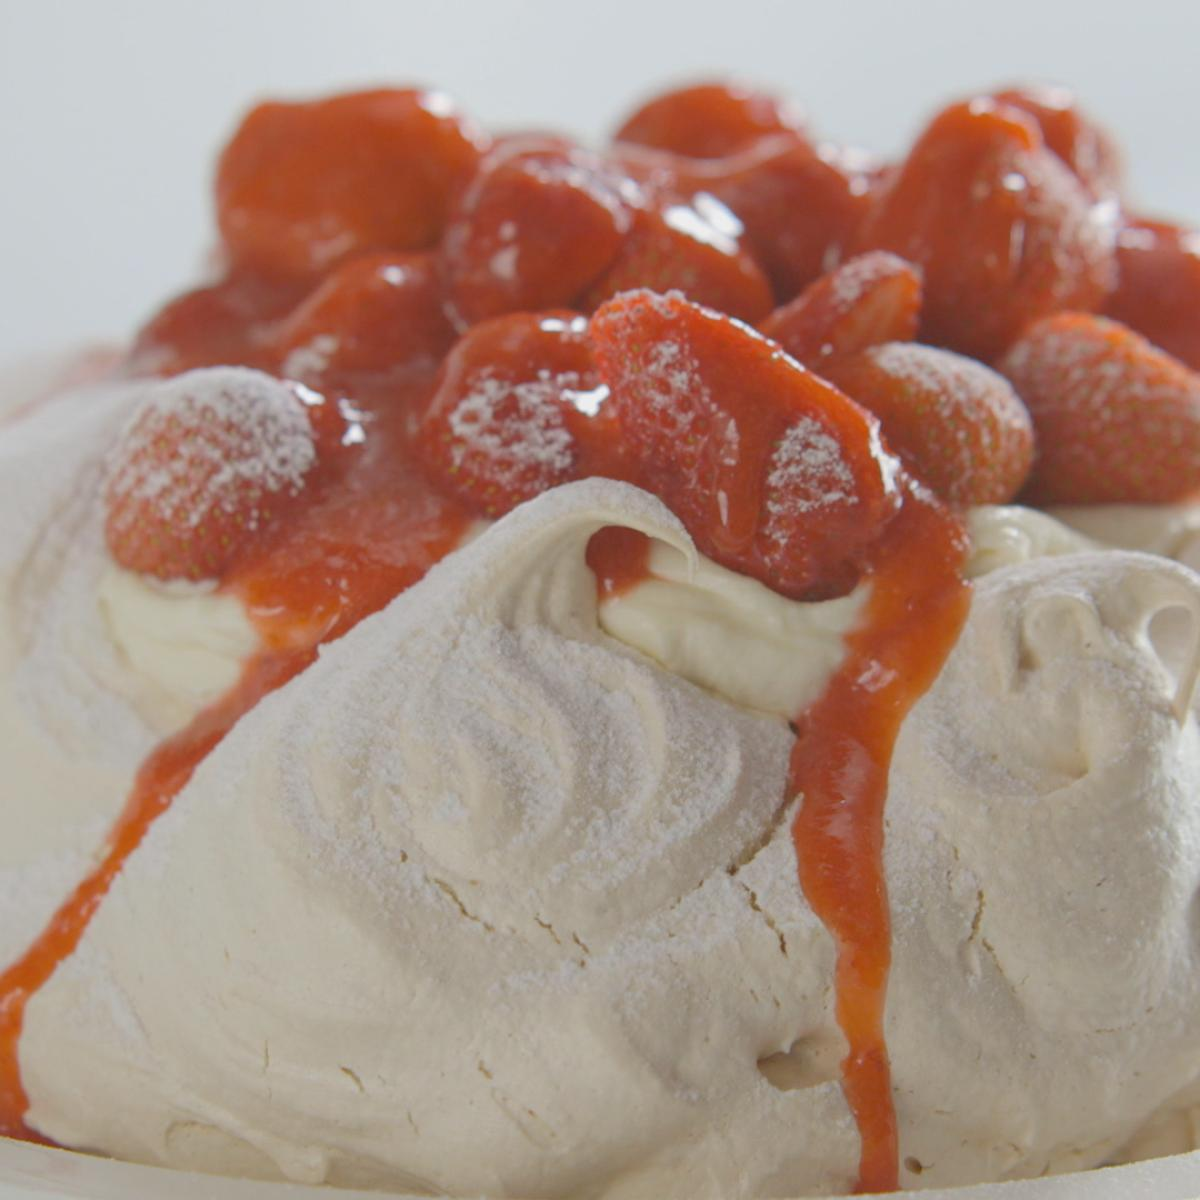 A picture of Delia's Strawberry and Vanilla Pavlova recipe